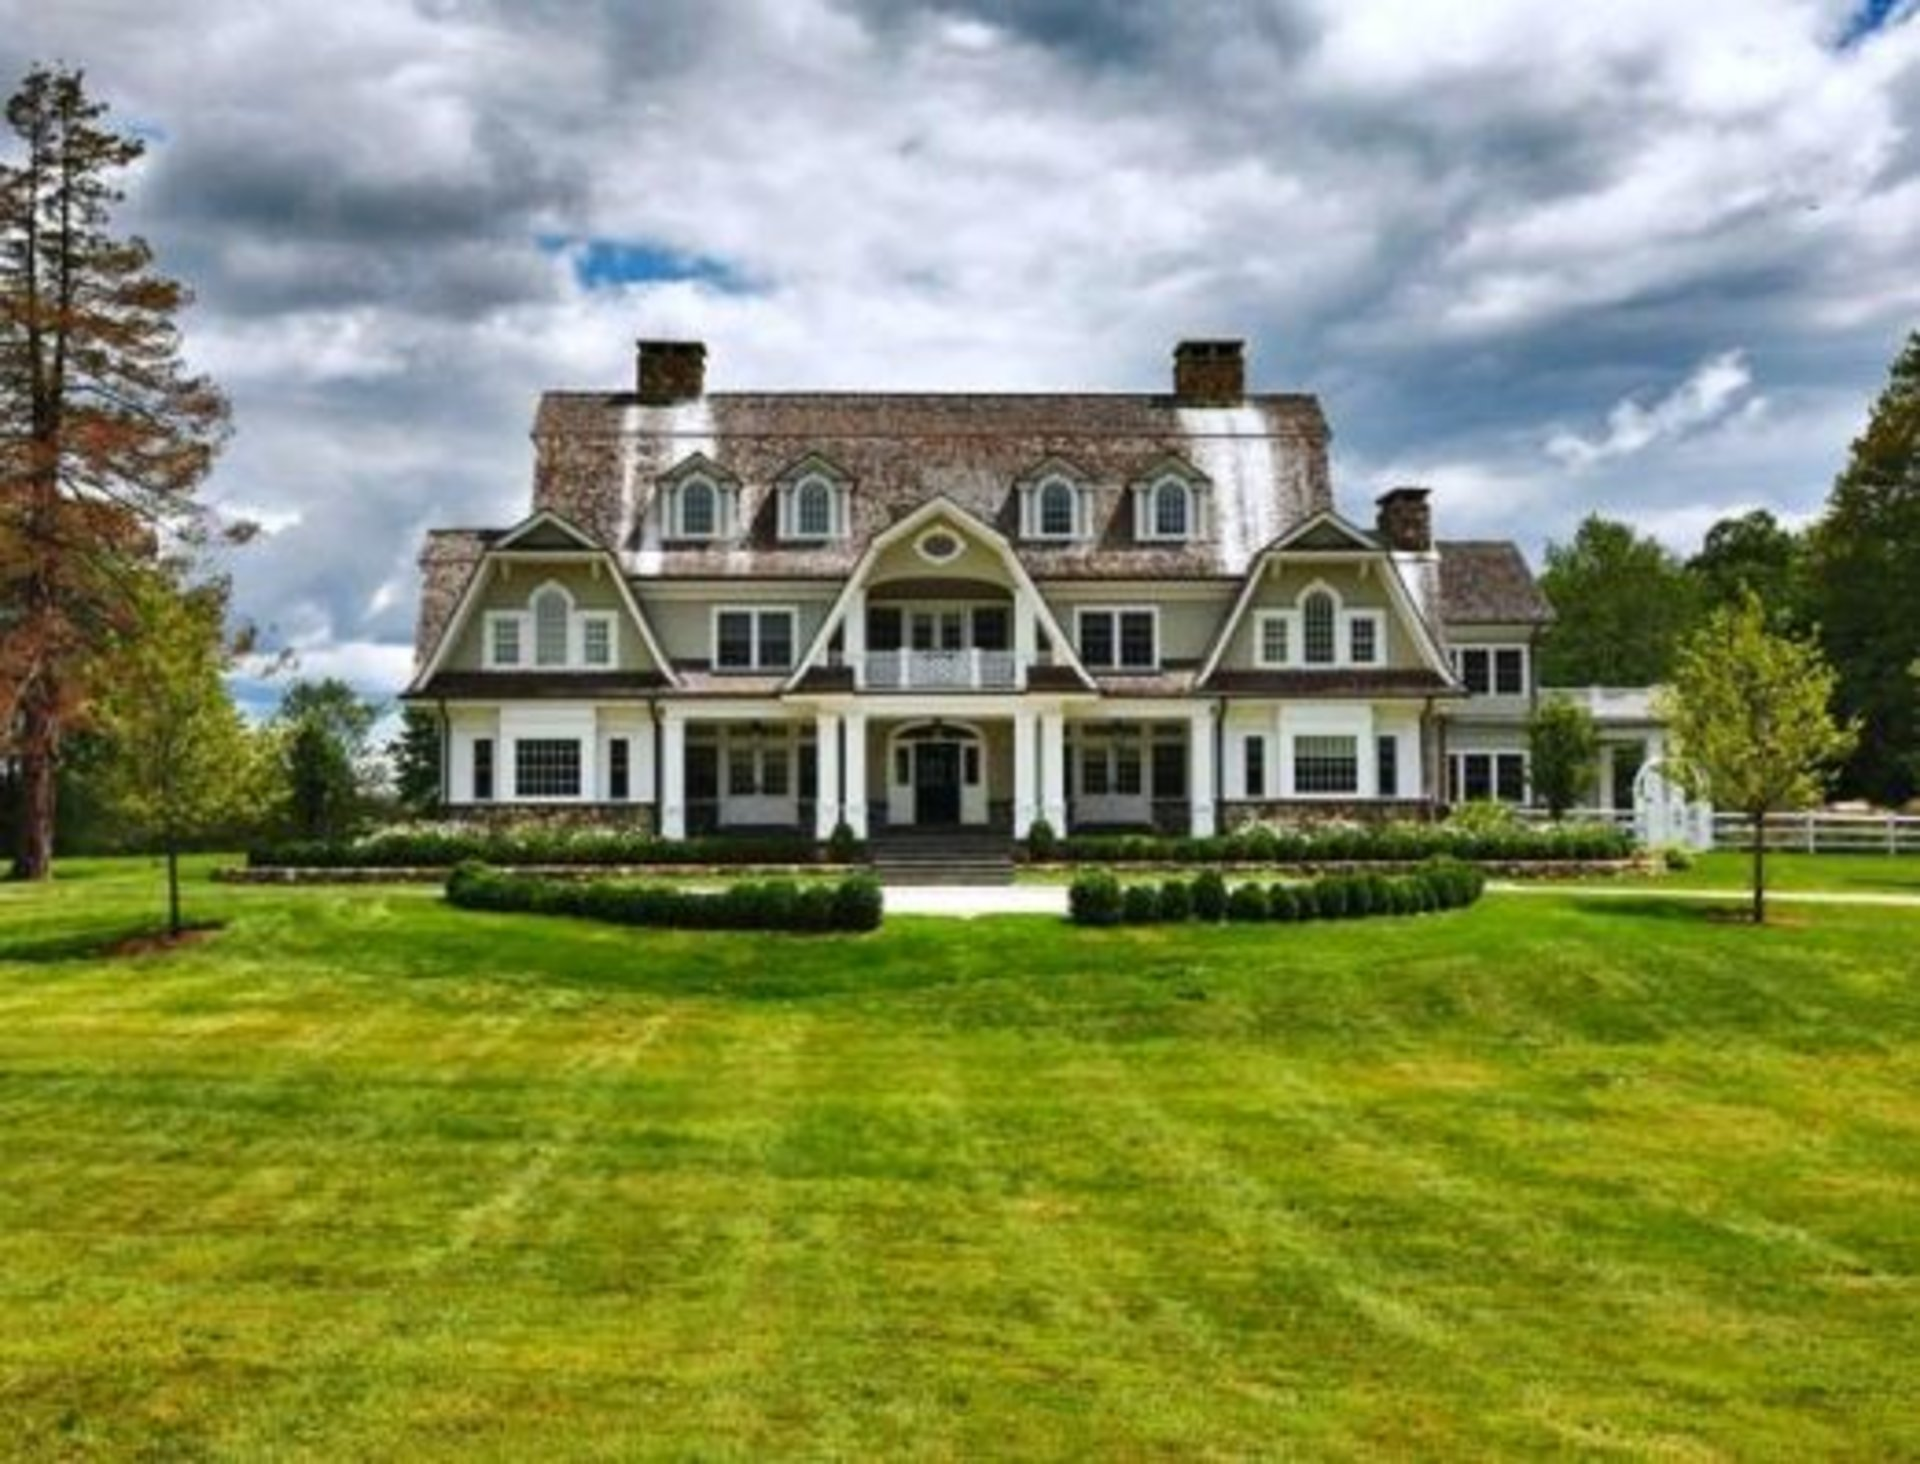 Fairfield county connecticut image ideas for building a for Building a house in ct